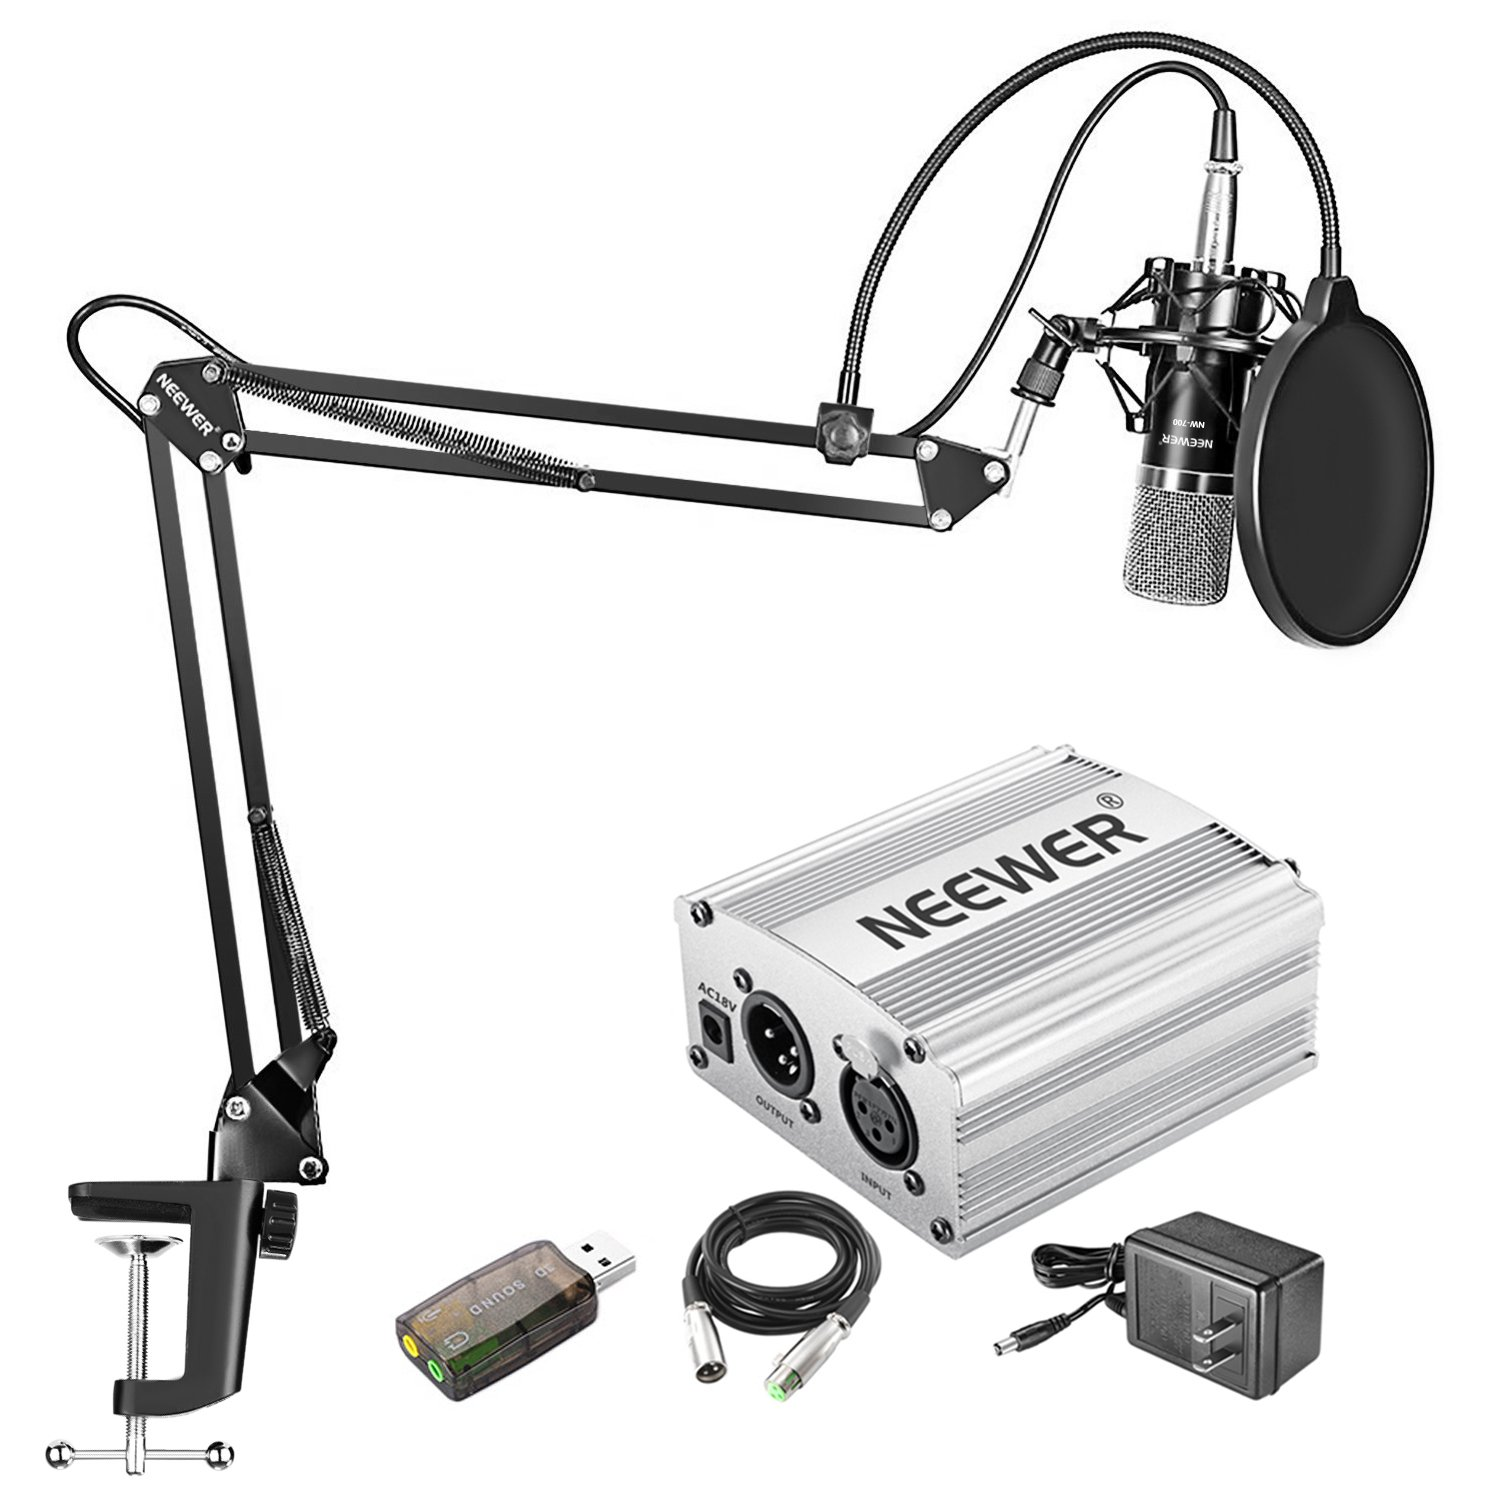 Neewer Home Studio NW-700 Condenser Microphone Kit with Shock Mount, NW-35 Boom Scissor Arm Stand, 48V Phantom Power Supply(Silver), XLR Cable, Pop Filter and Type-A USB External Stereo Sound Adapter 40093129